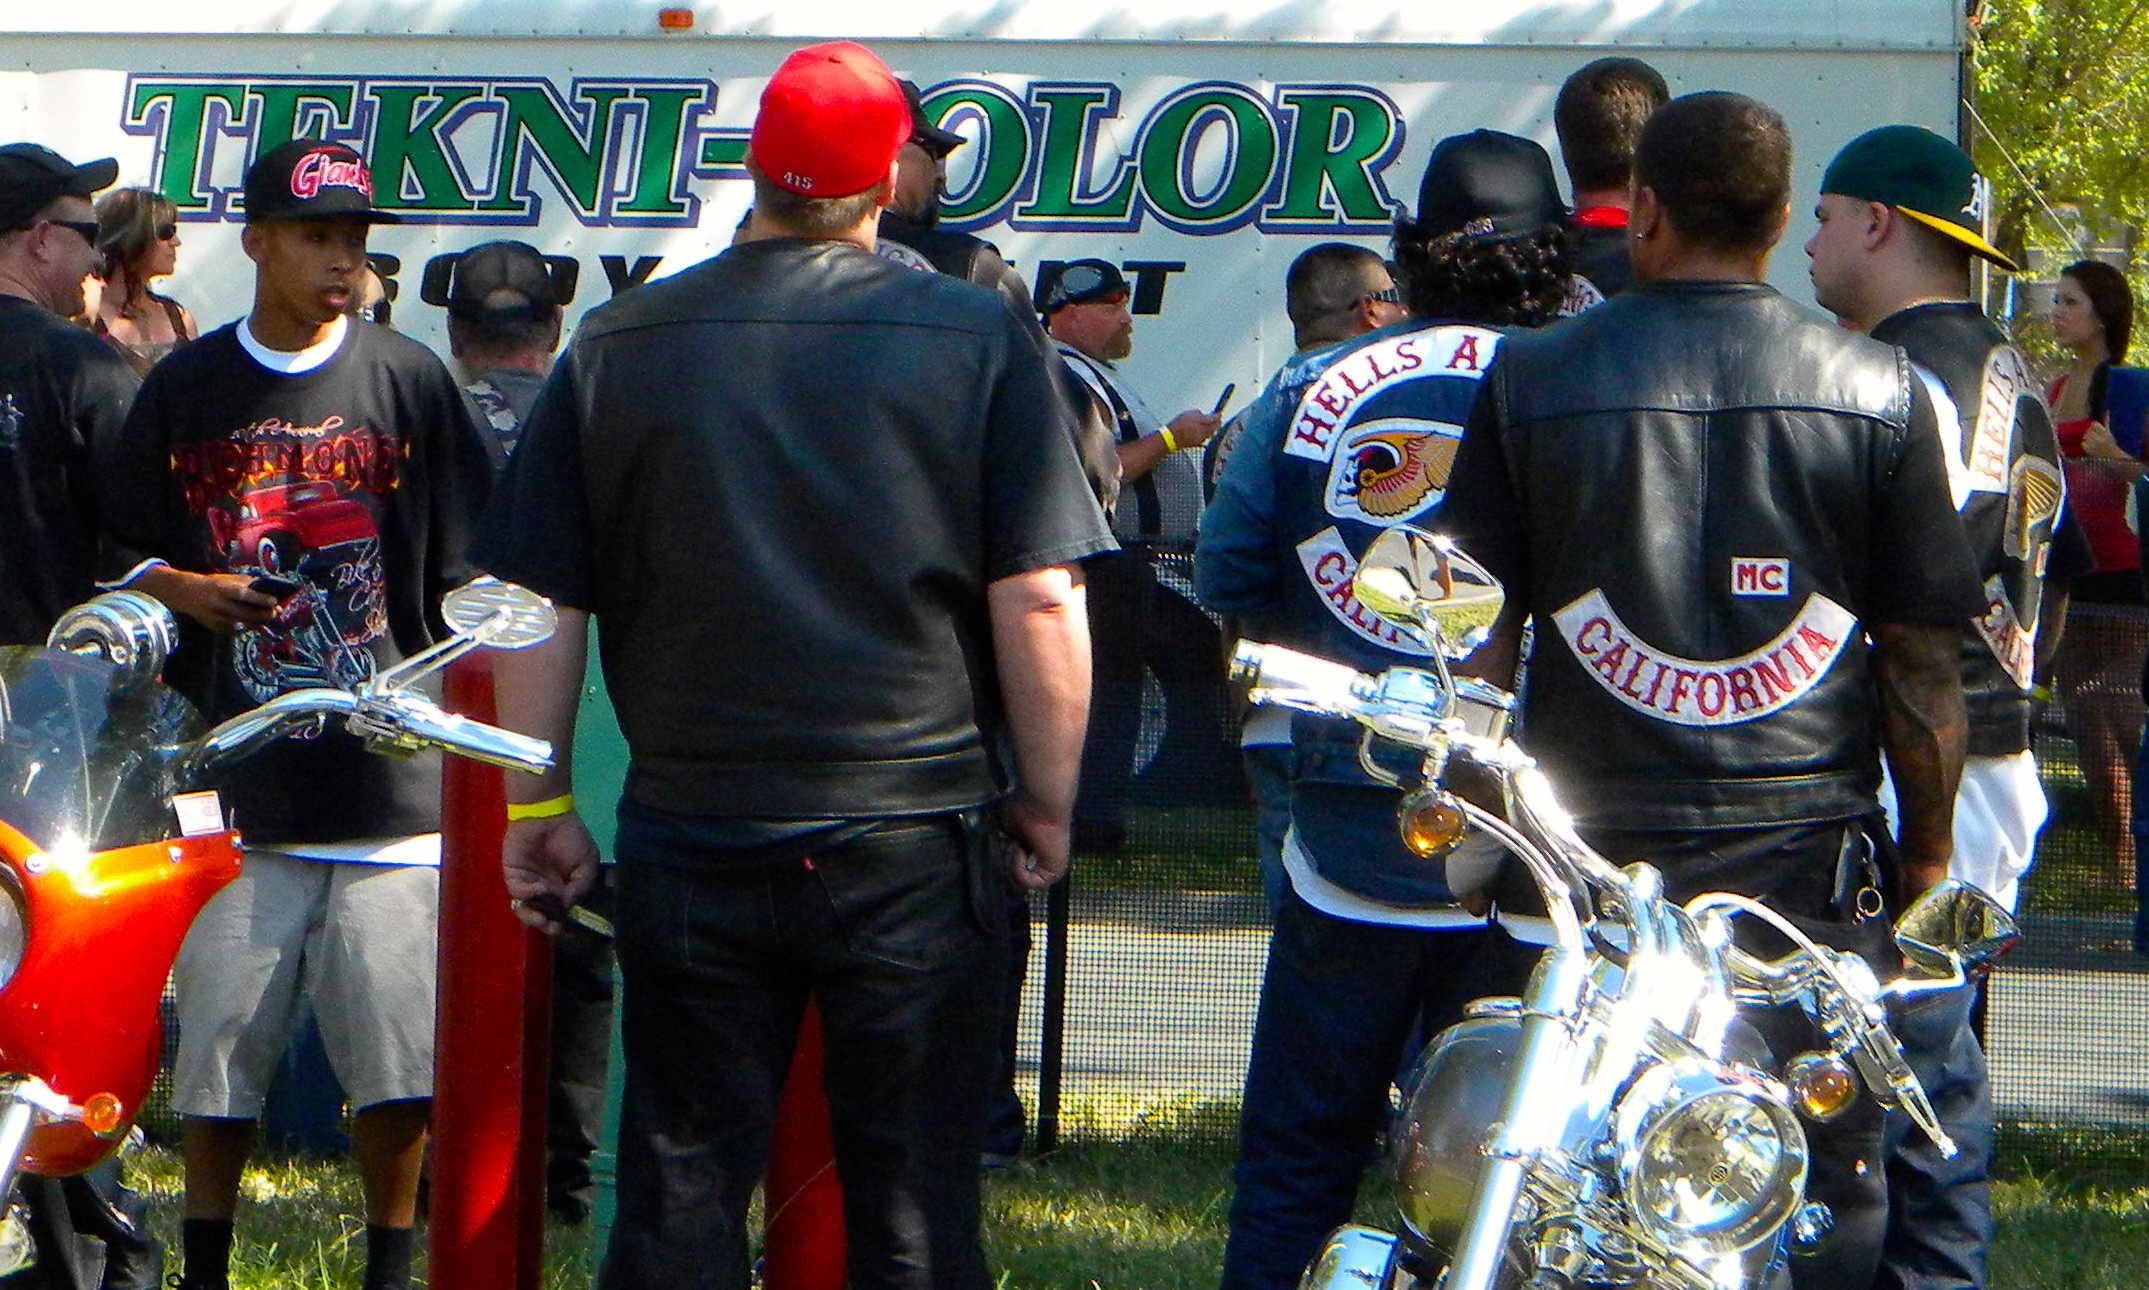 Res: 2149x1290, Outlaw Biker Gangs | it is not totally clear on what the requirements are  to become